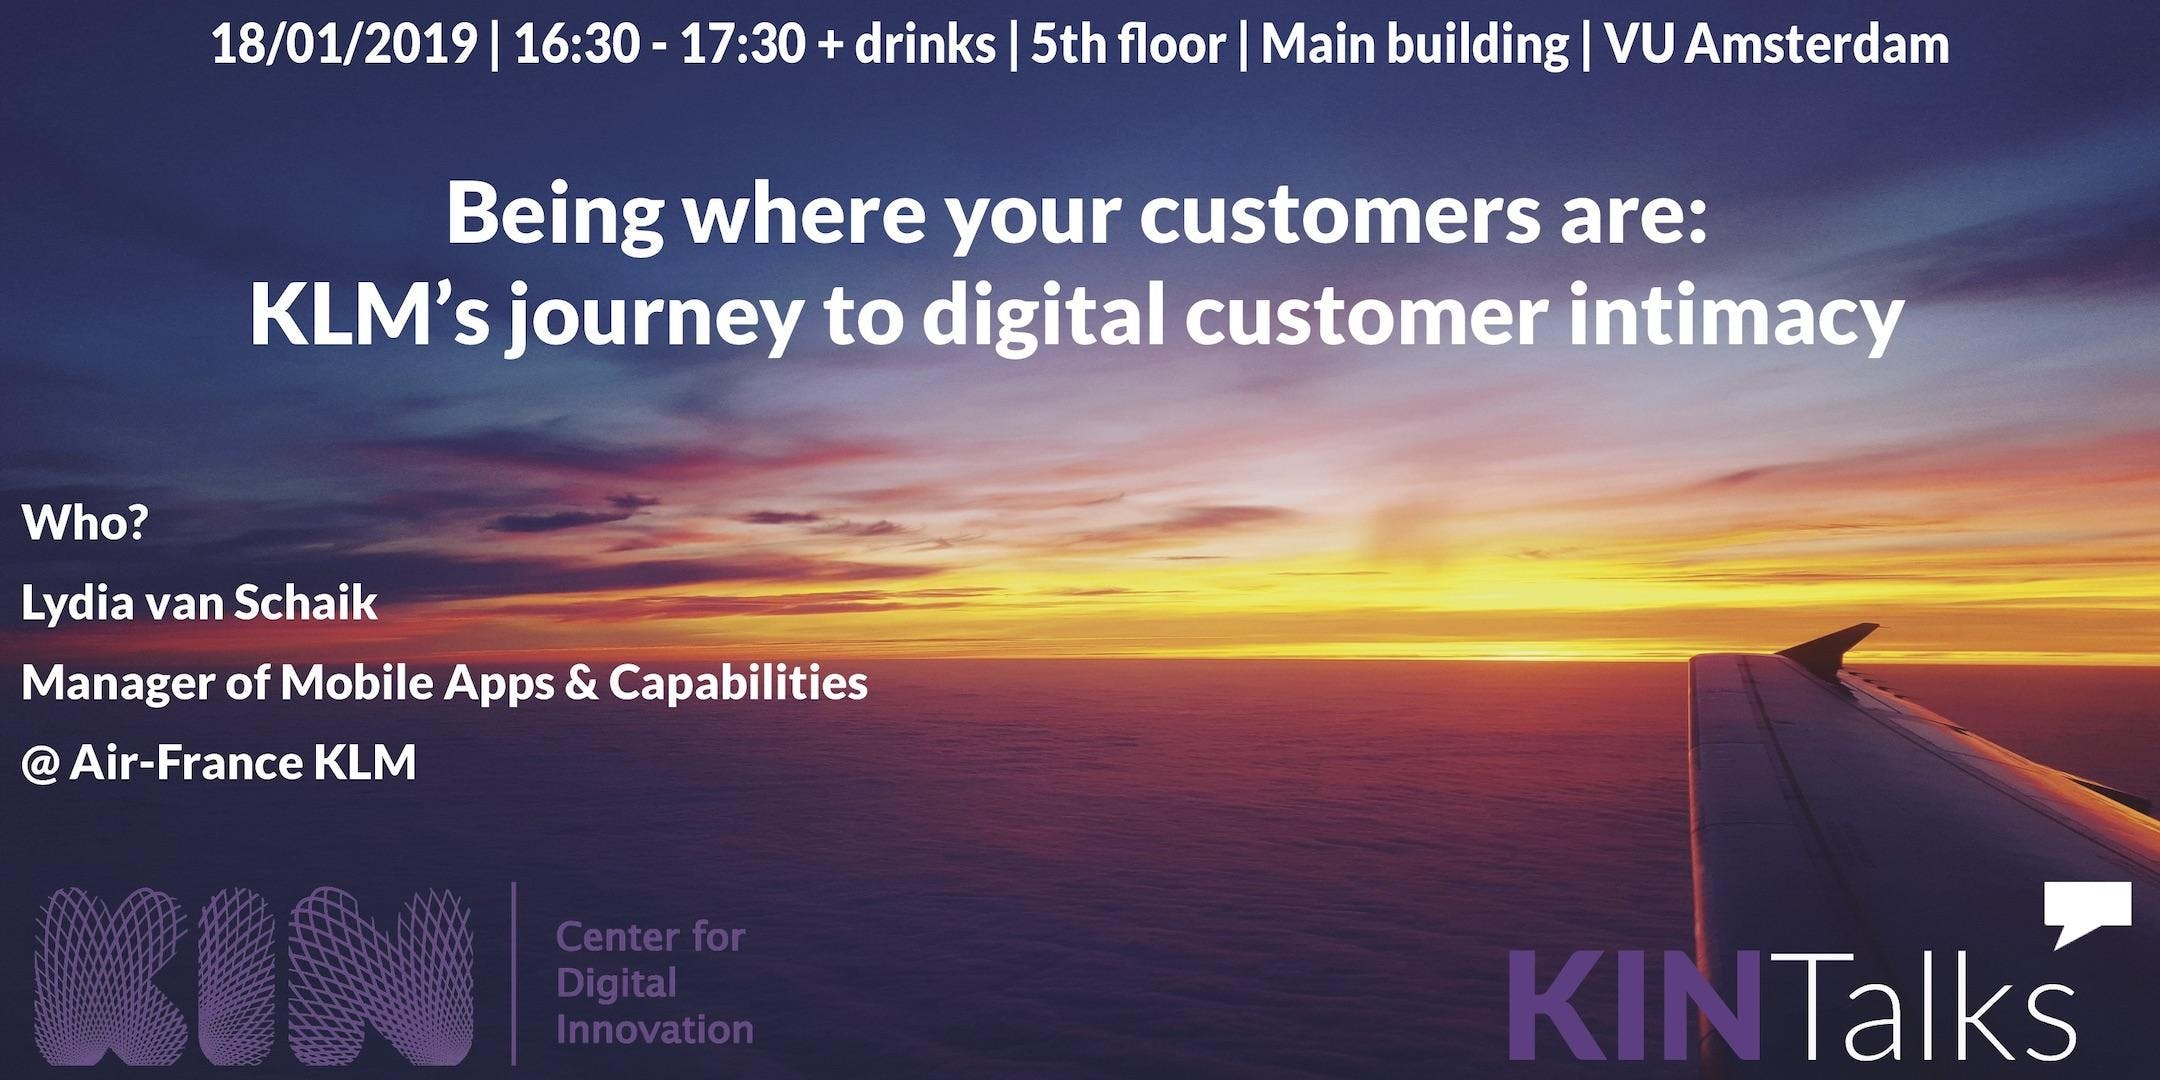 KINTalks: Being where your customers are: KLM